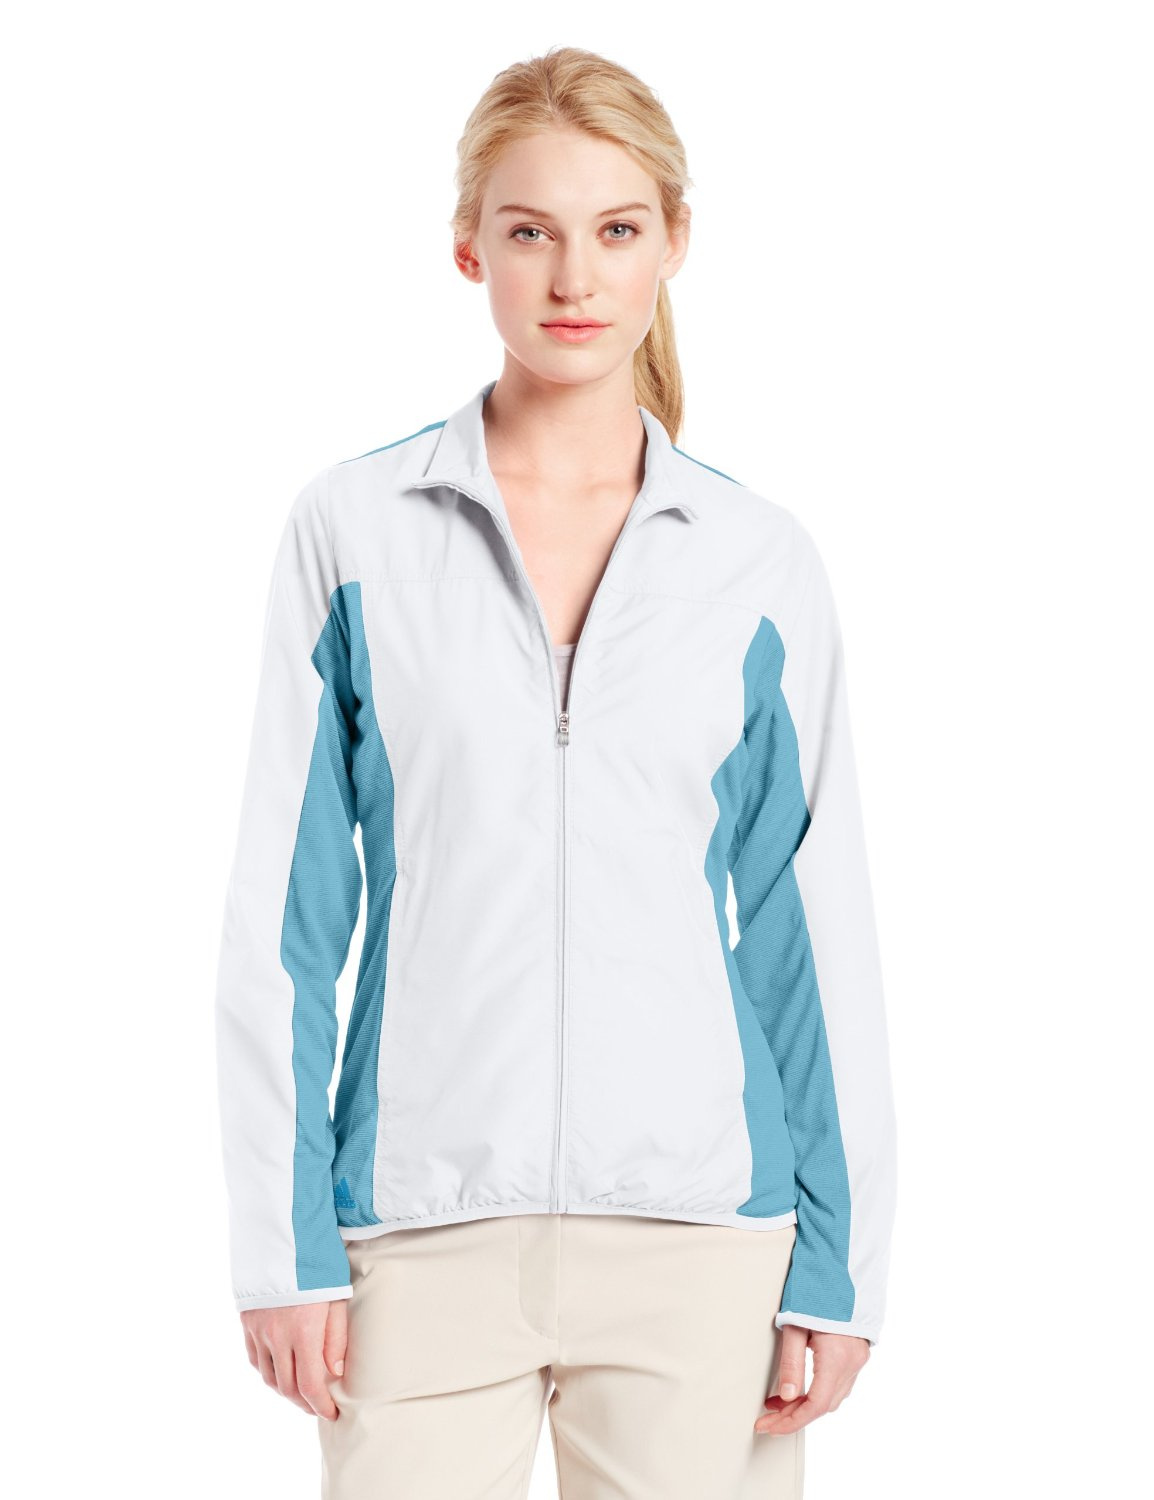 Womens Adidas Microstripe Golf Wind Jackets